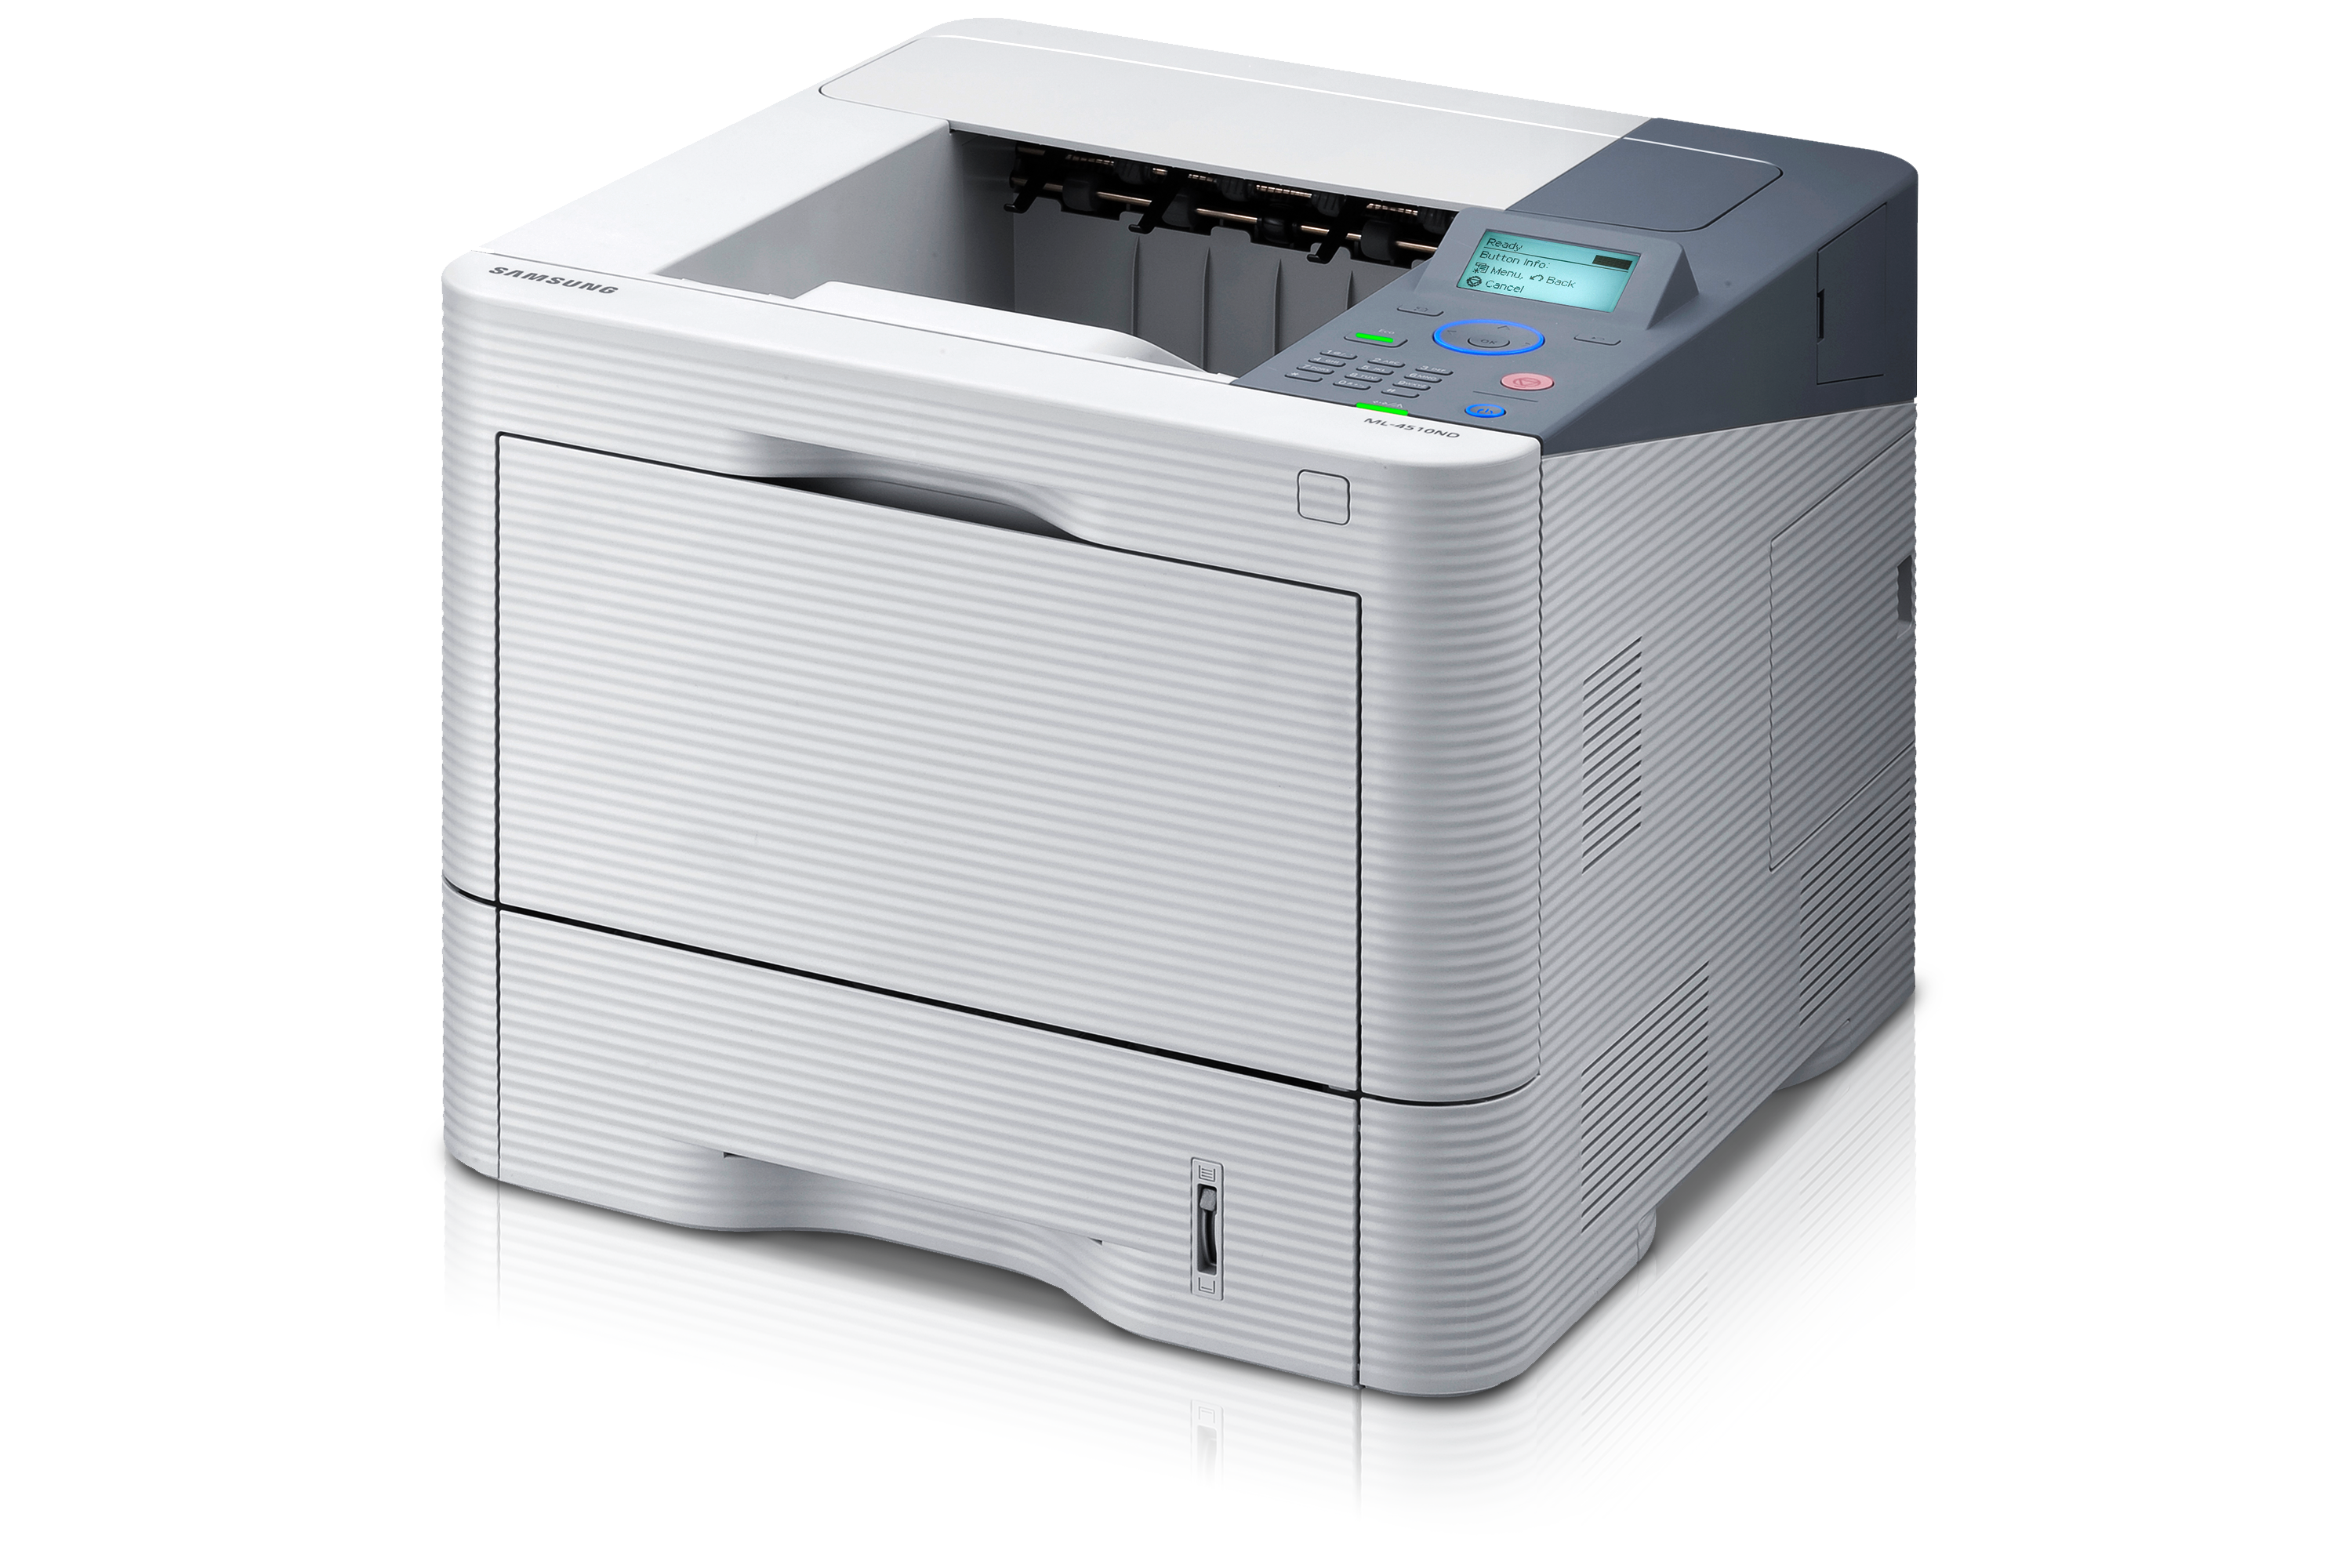 1200dpi 43ppm Mono Printer ML-4510ND